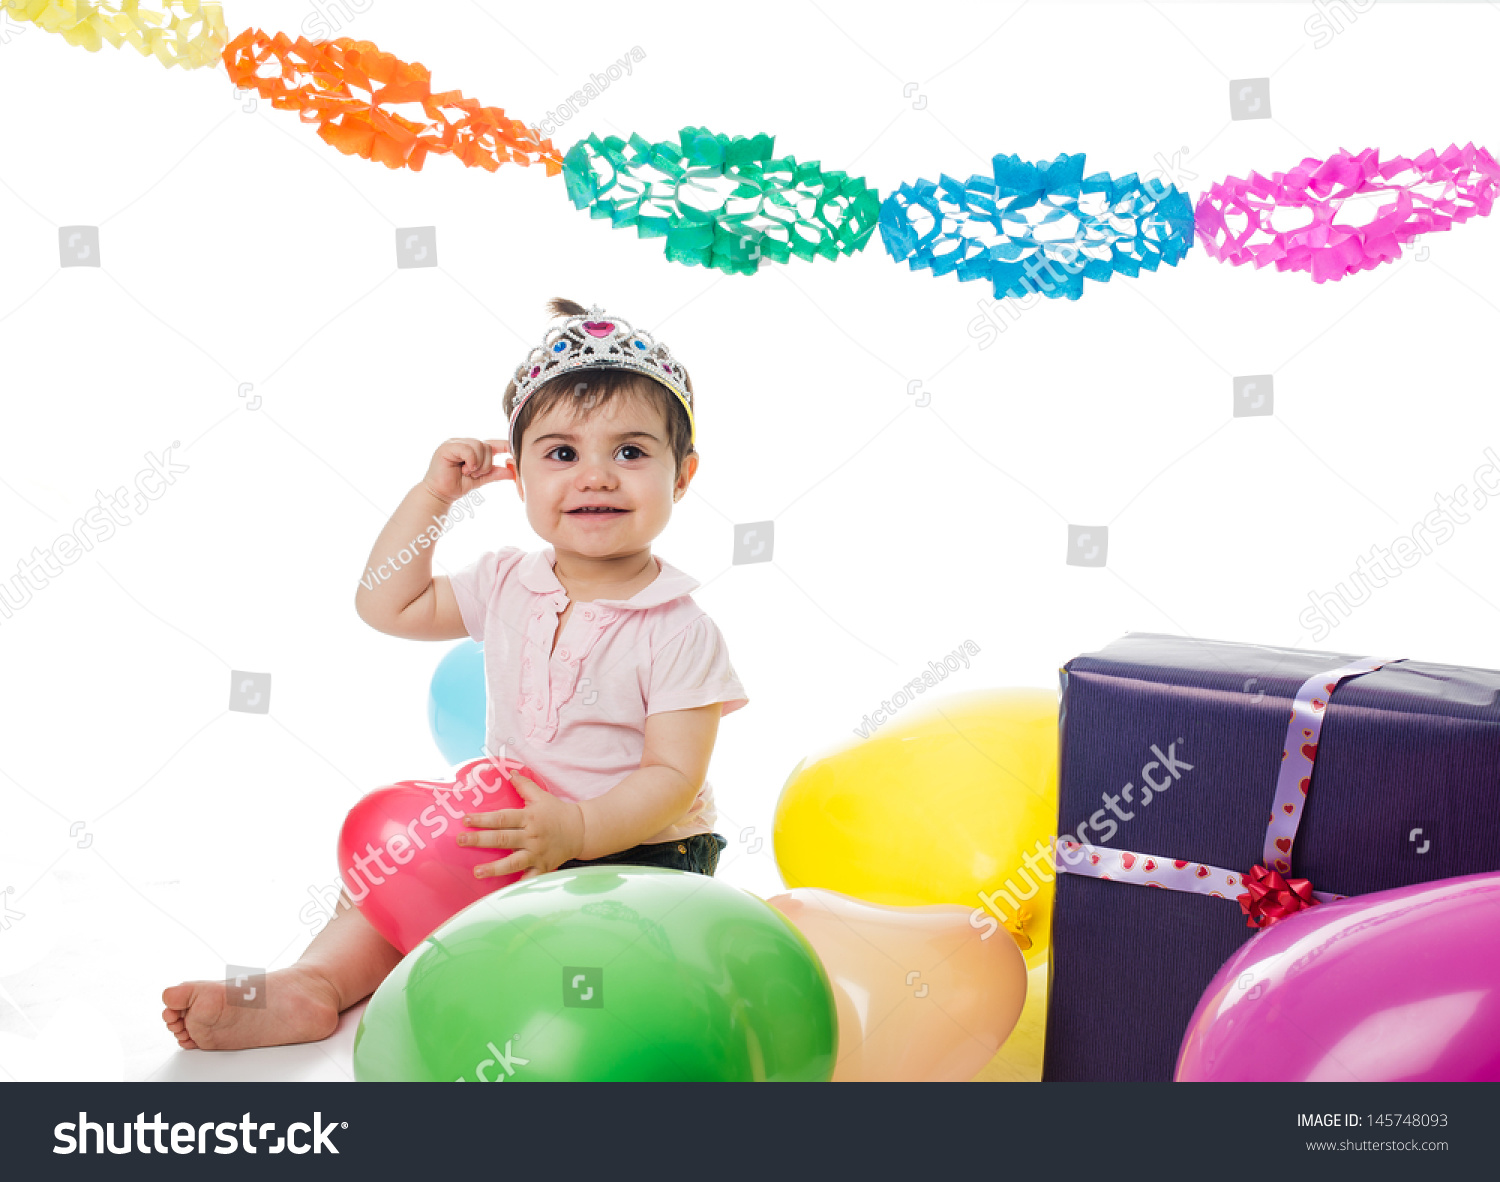 Princess Baby With Presents And Balloons In Her Birthday Party